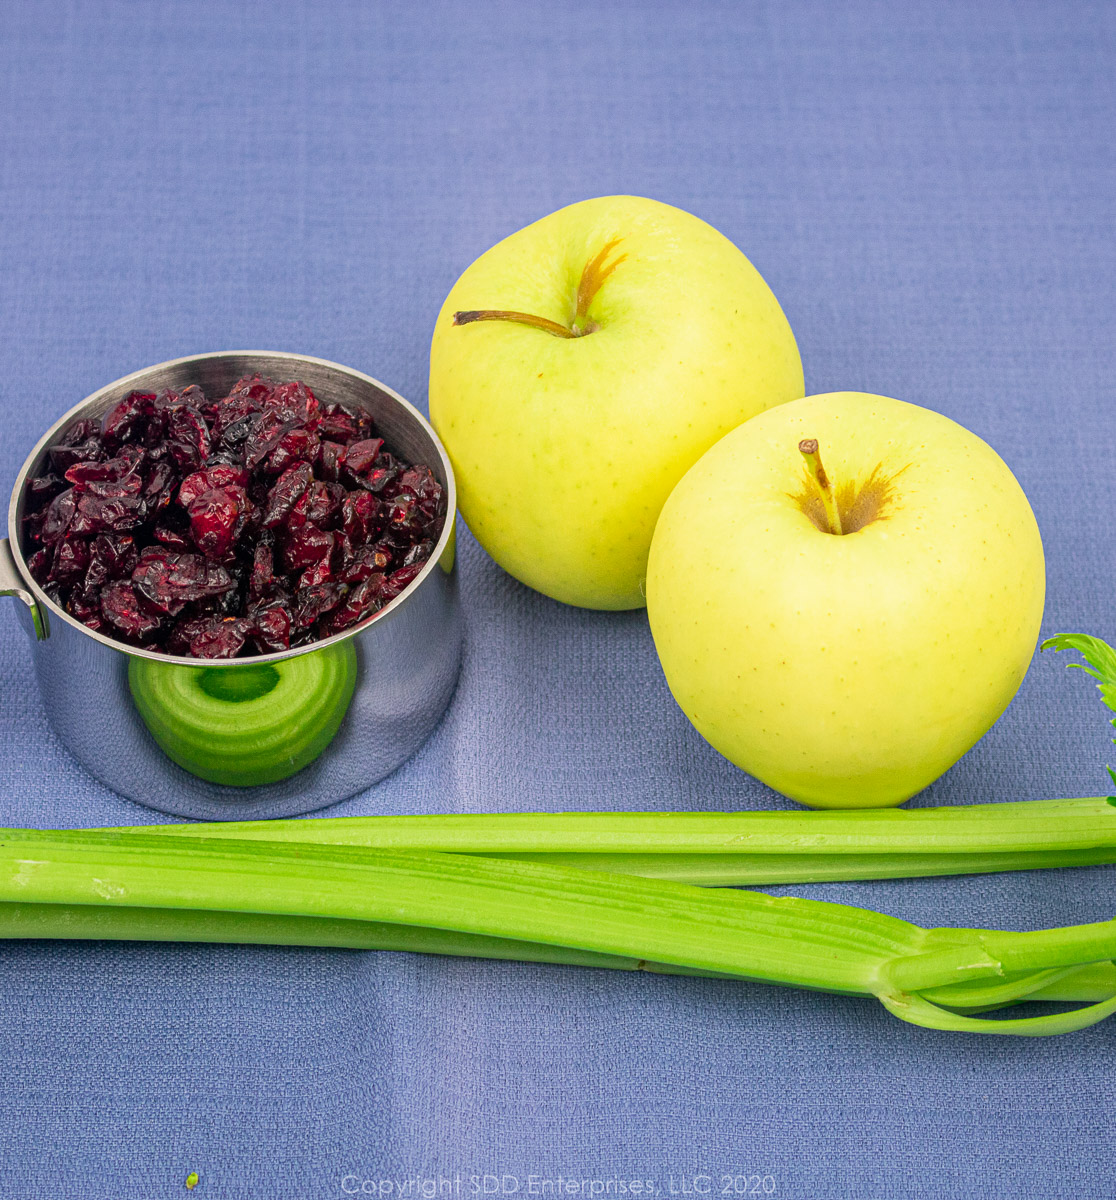 celery, two golden delicious apples and dried cranberries in a measuring cup